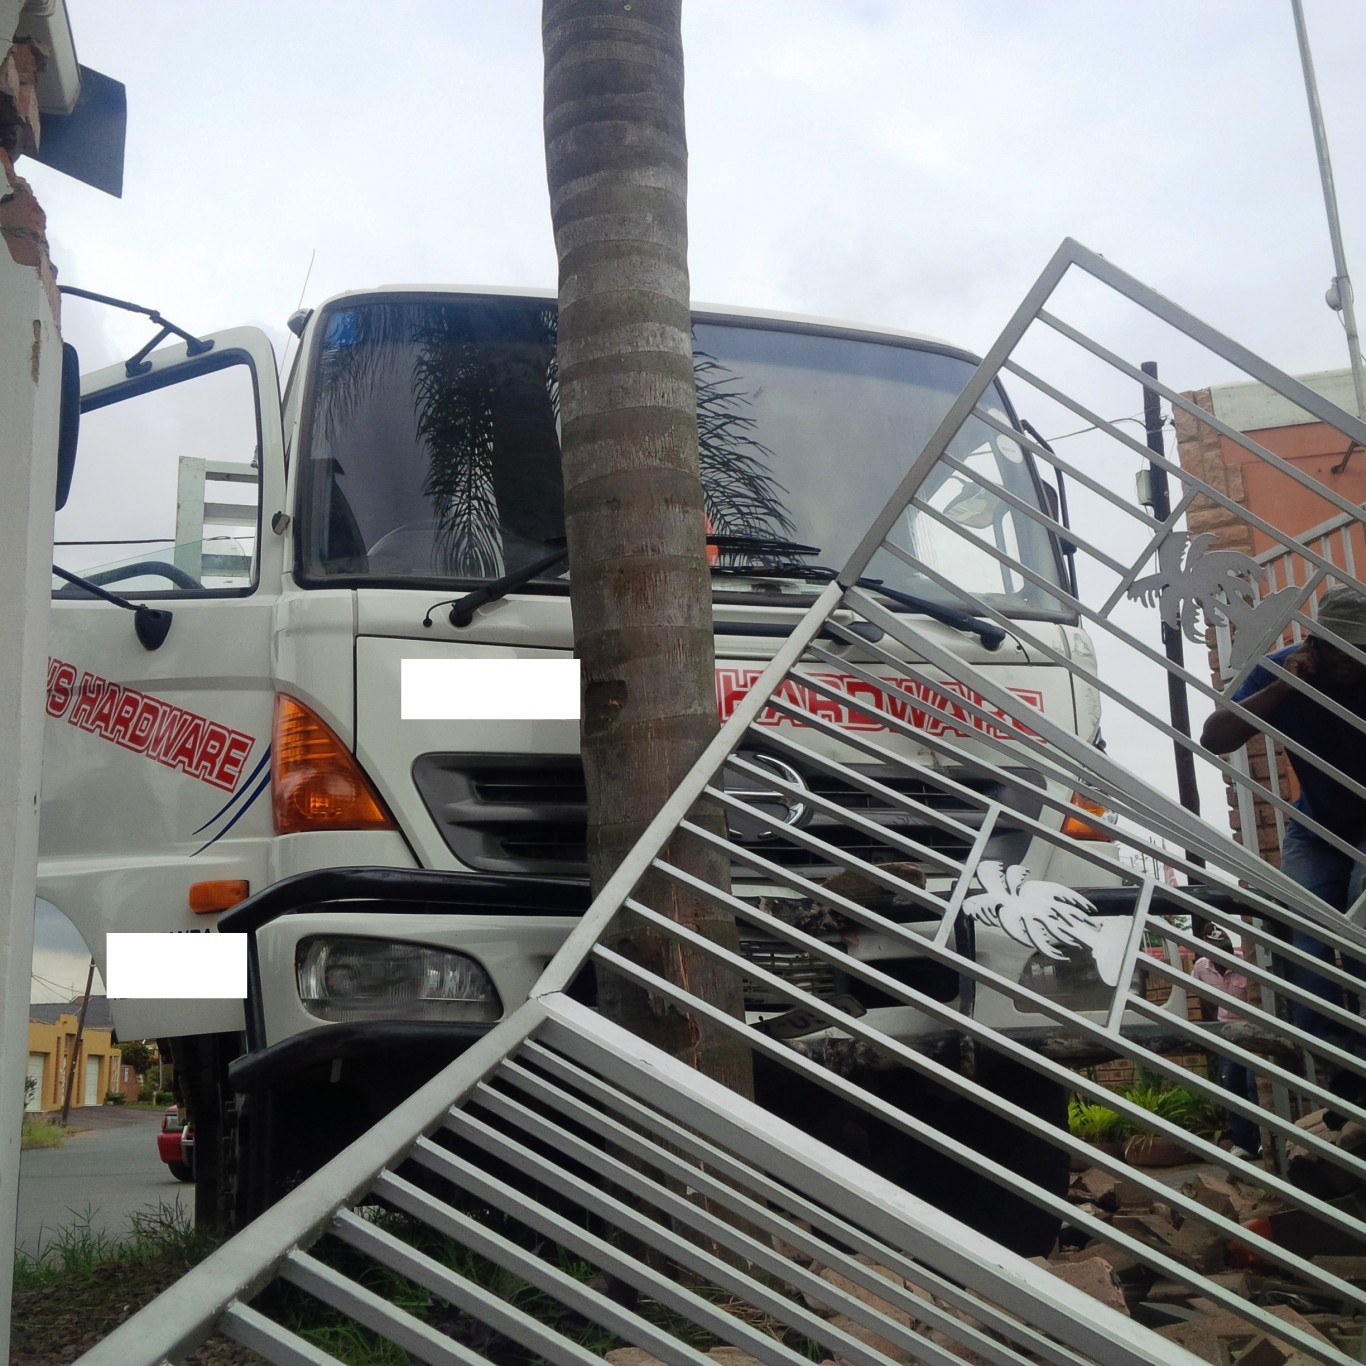 Truck crashes into fence in Durban